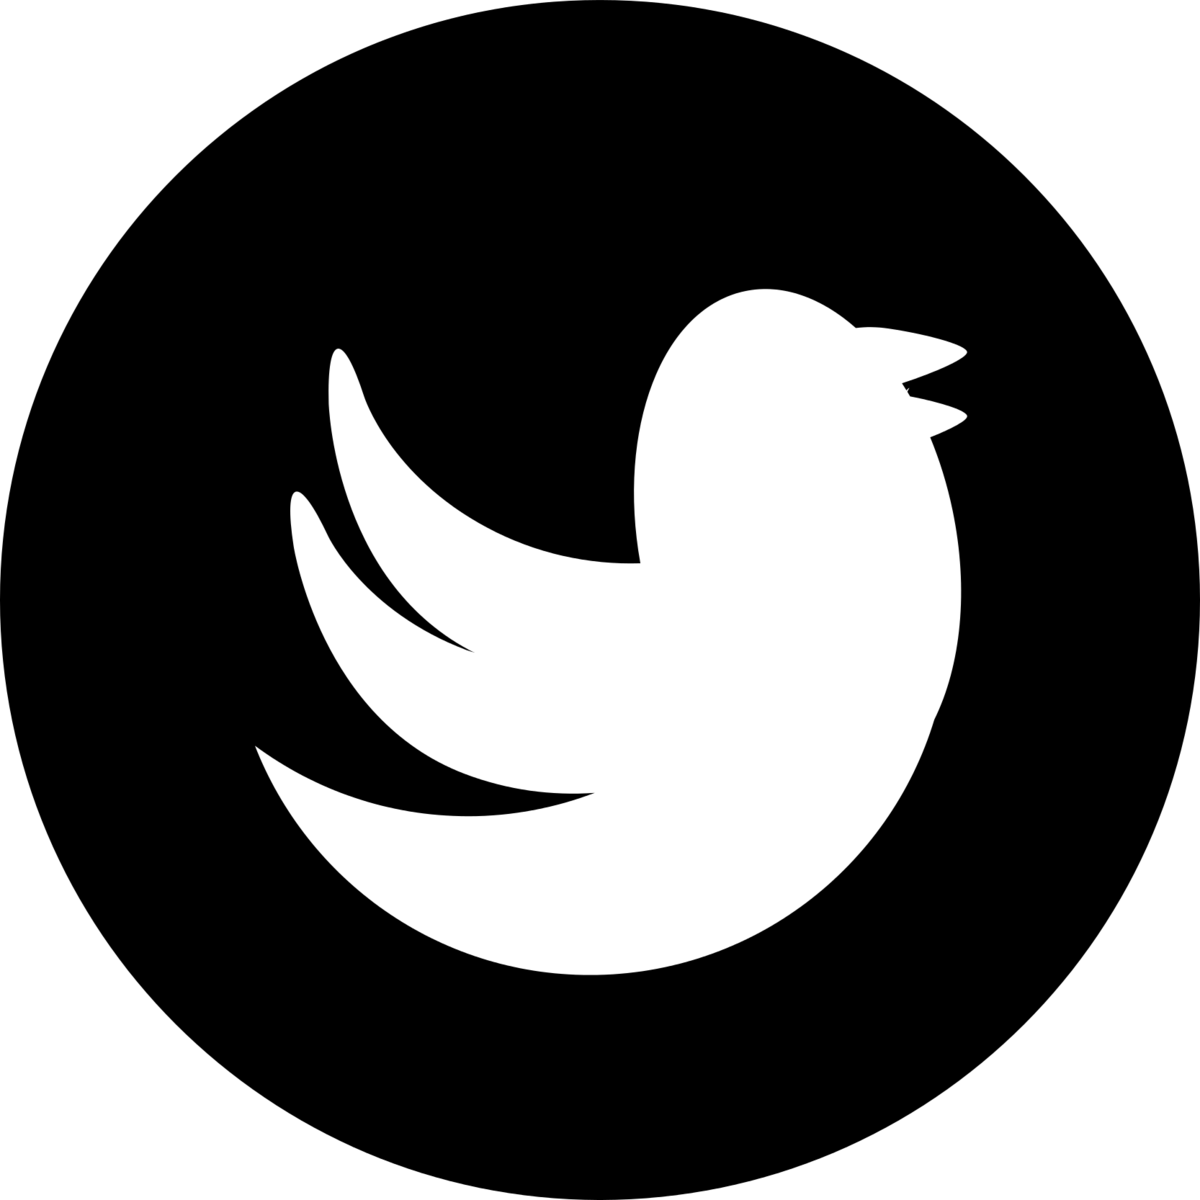 Black and white twitter logo png. Icon transparent umsu recent